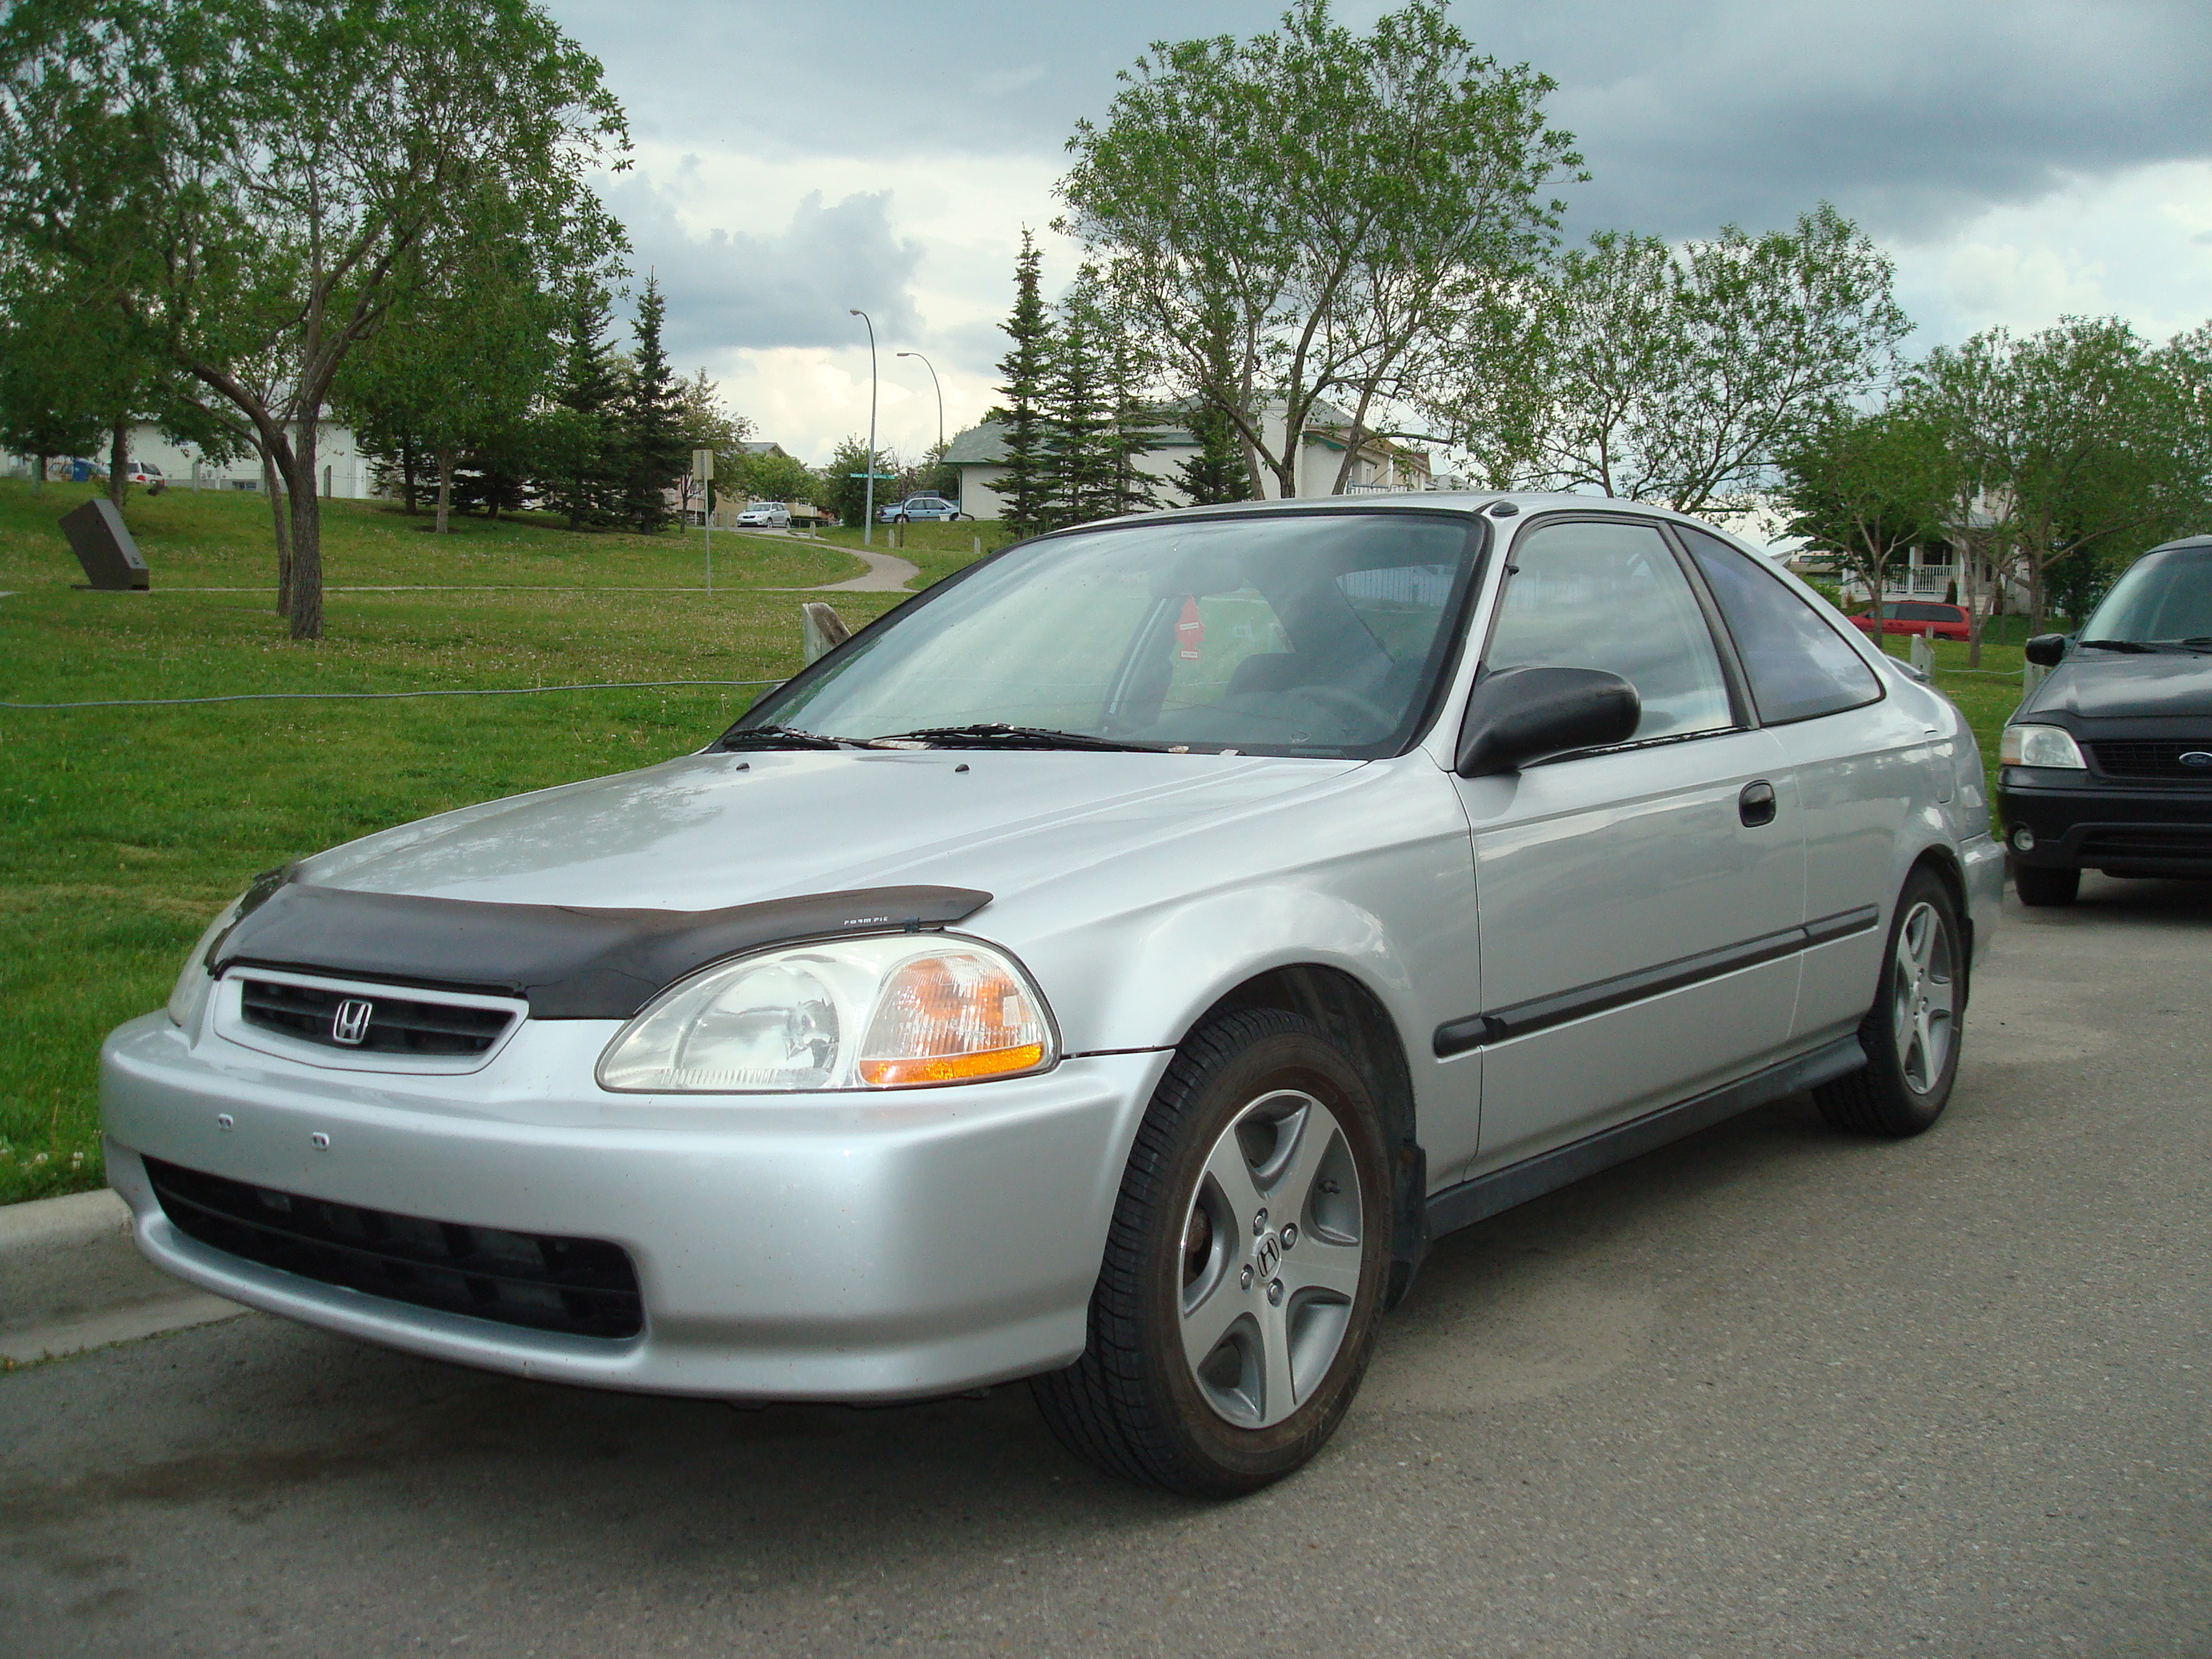 89camry4wd 1998 honda civic specs photos modification info at cardomain. Black Bedroom Furniture Sets. Home Design Ideas